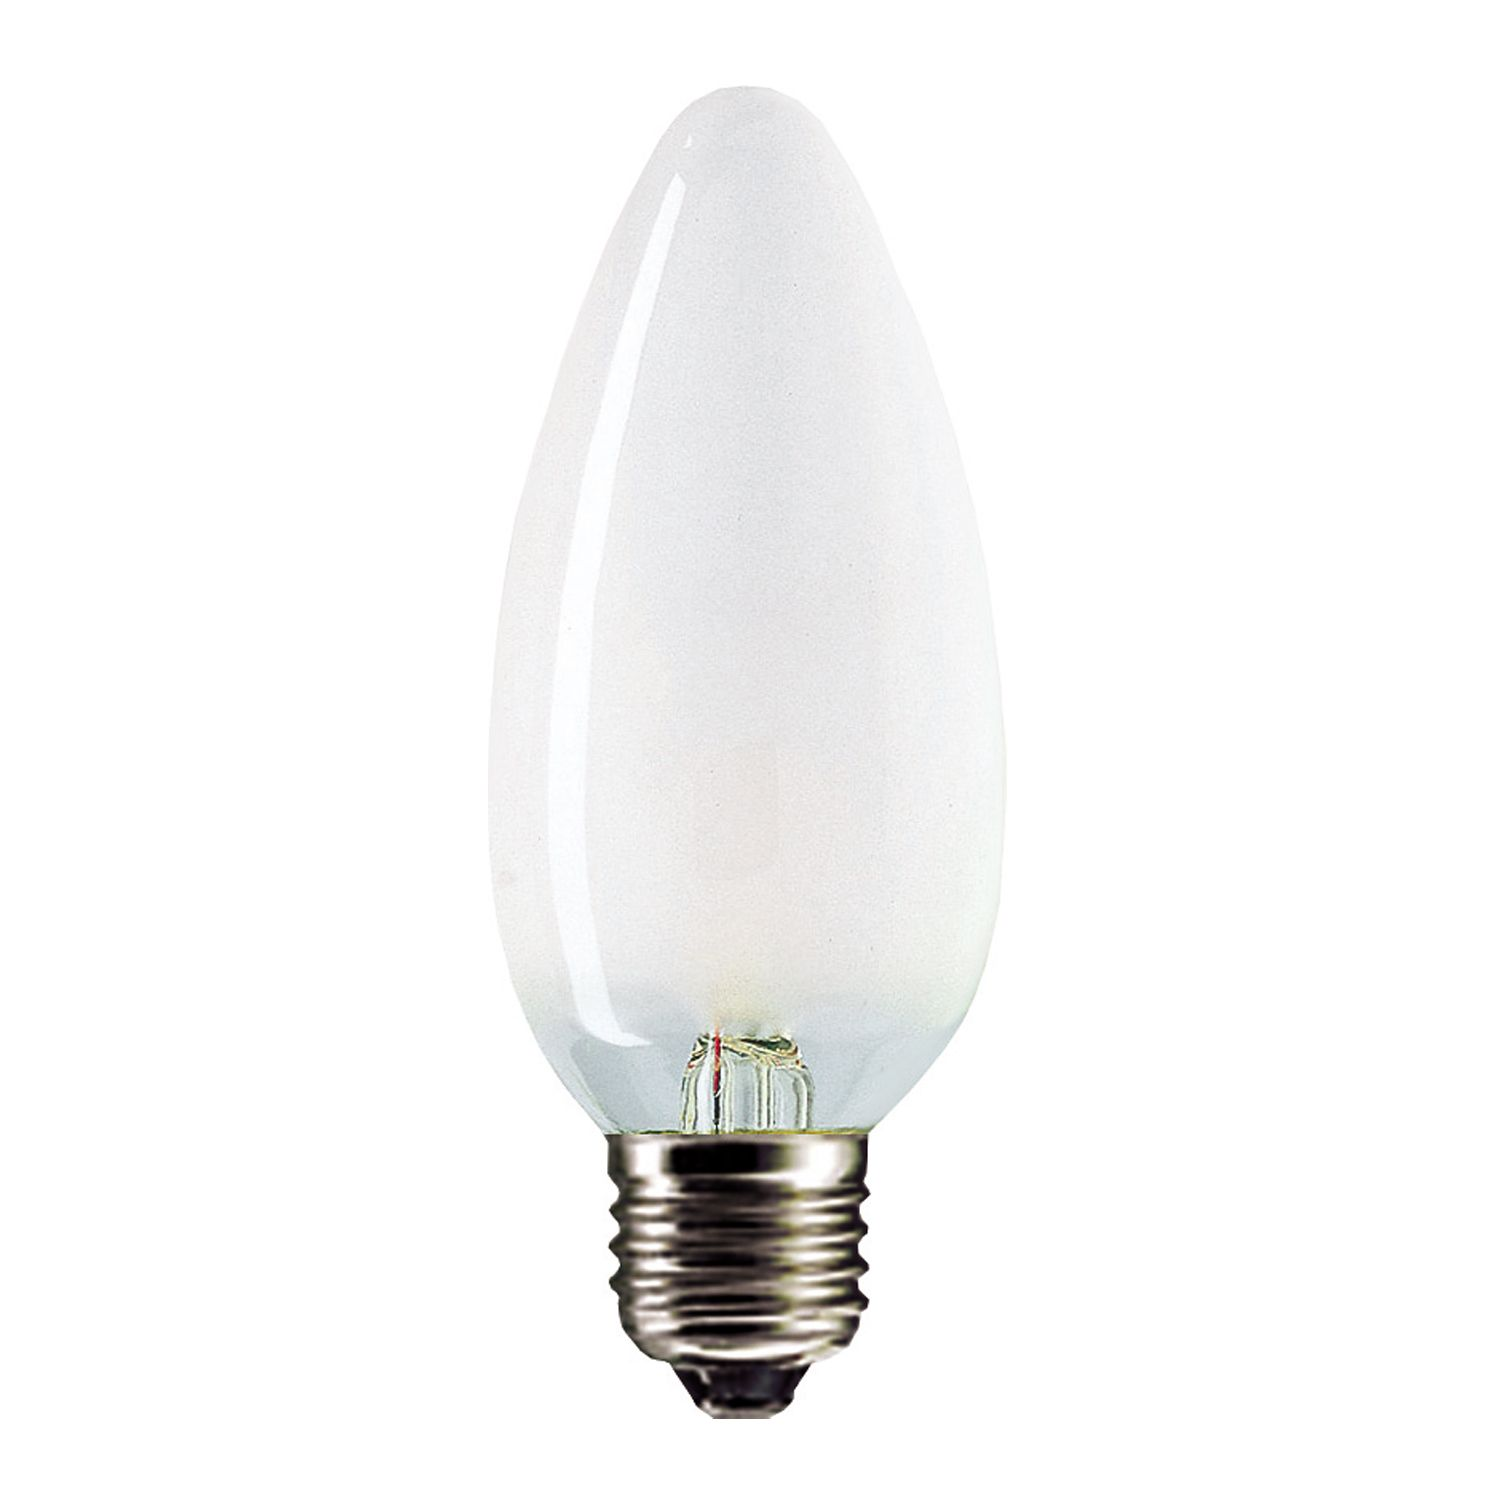 Standard Incandescent Candle Frosted B35 E27 40W 230V